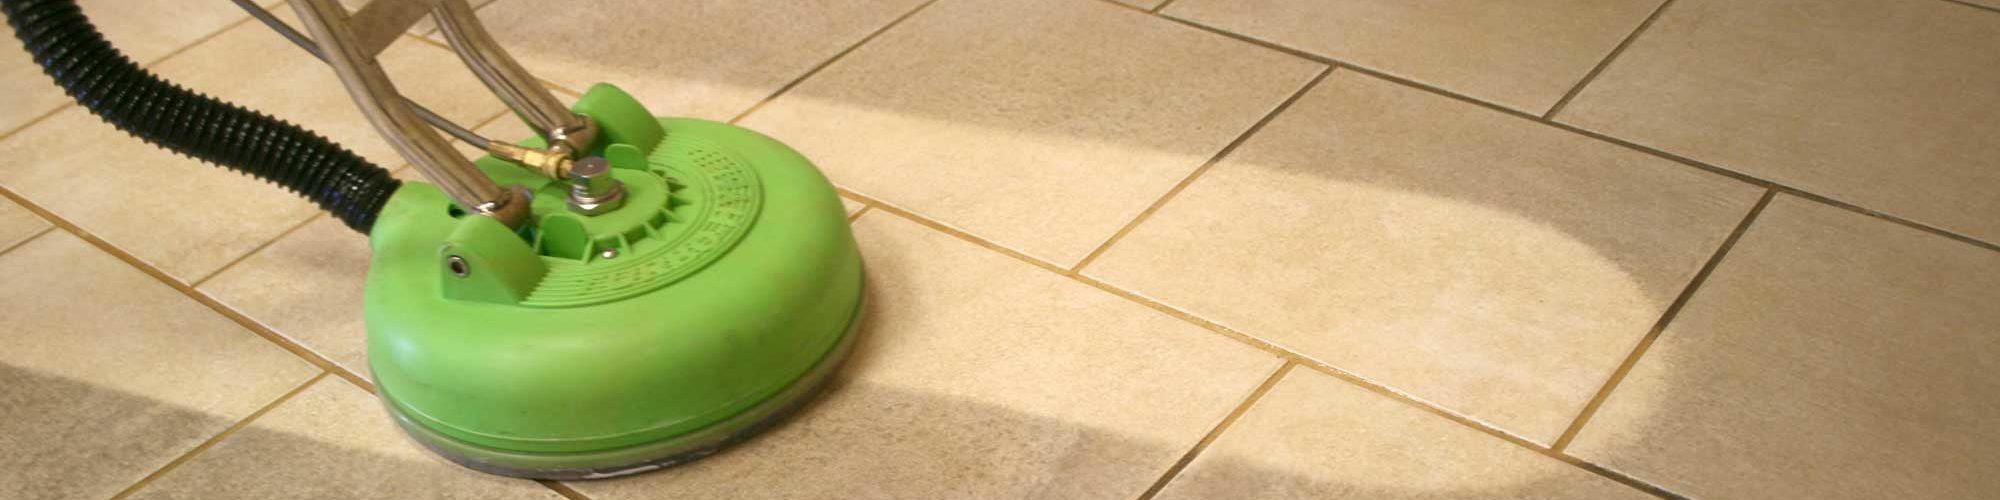 Tile and grout cleaning company generations carpet cleaning professional grout and tile cleaning generations carpet cleaning baanklon Choice Image